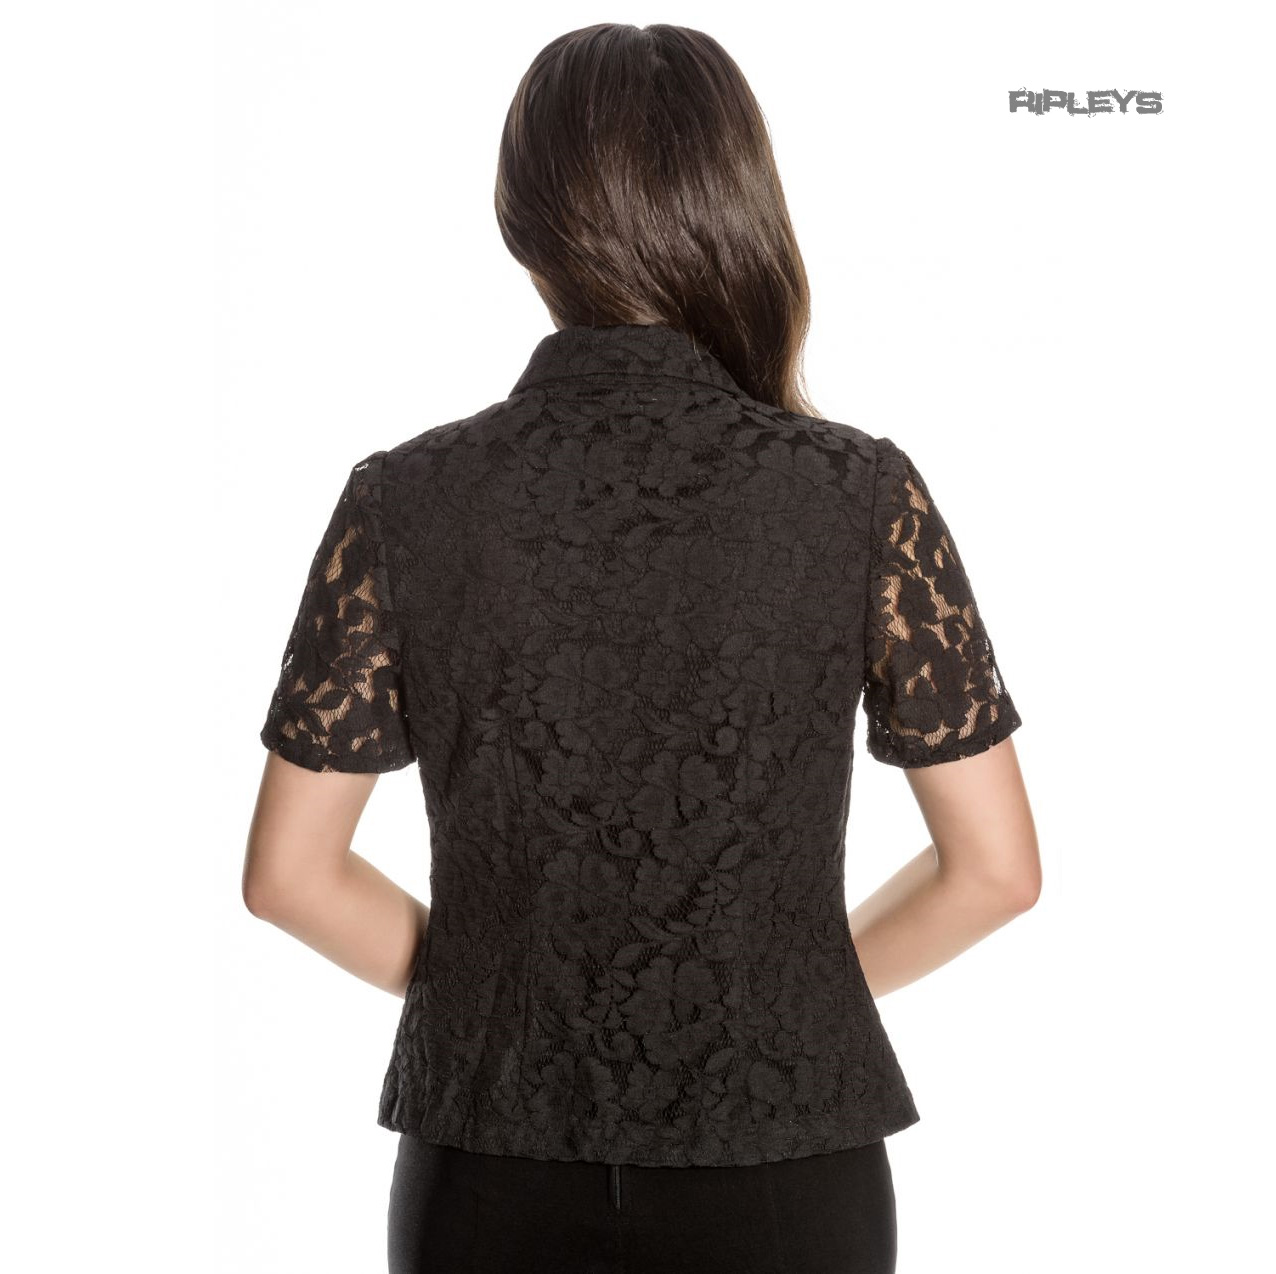 Hell-Bunny-Spin-Doctor-Vampire-Gothic-Shirt-Top-ROWENA-Lace-Blouse-All-Sizes Indexbild 8